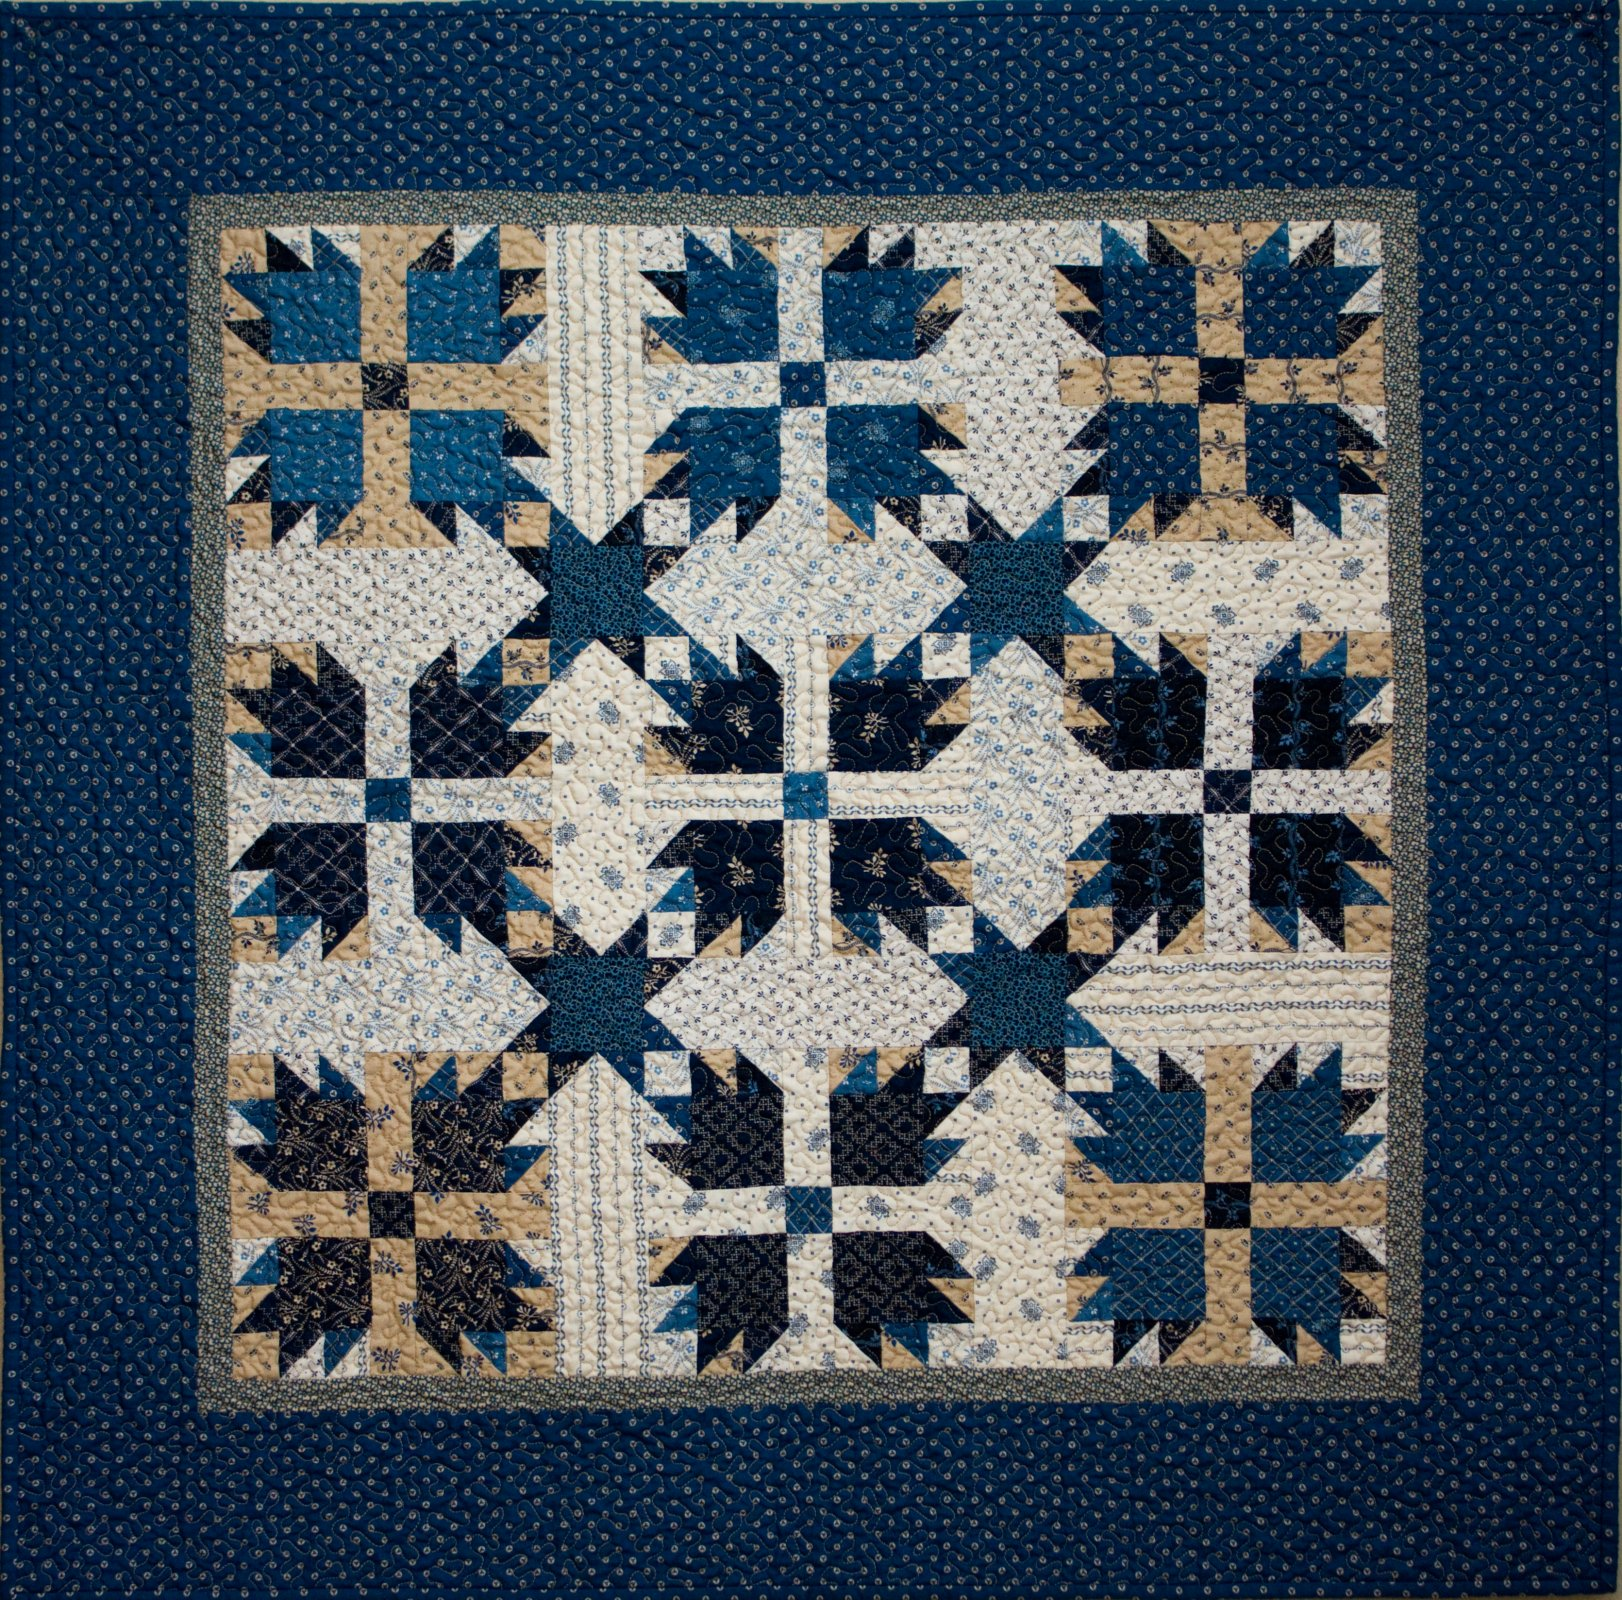 Little Bear Paw Kit Includes Backing